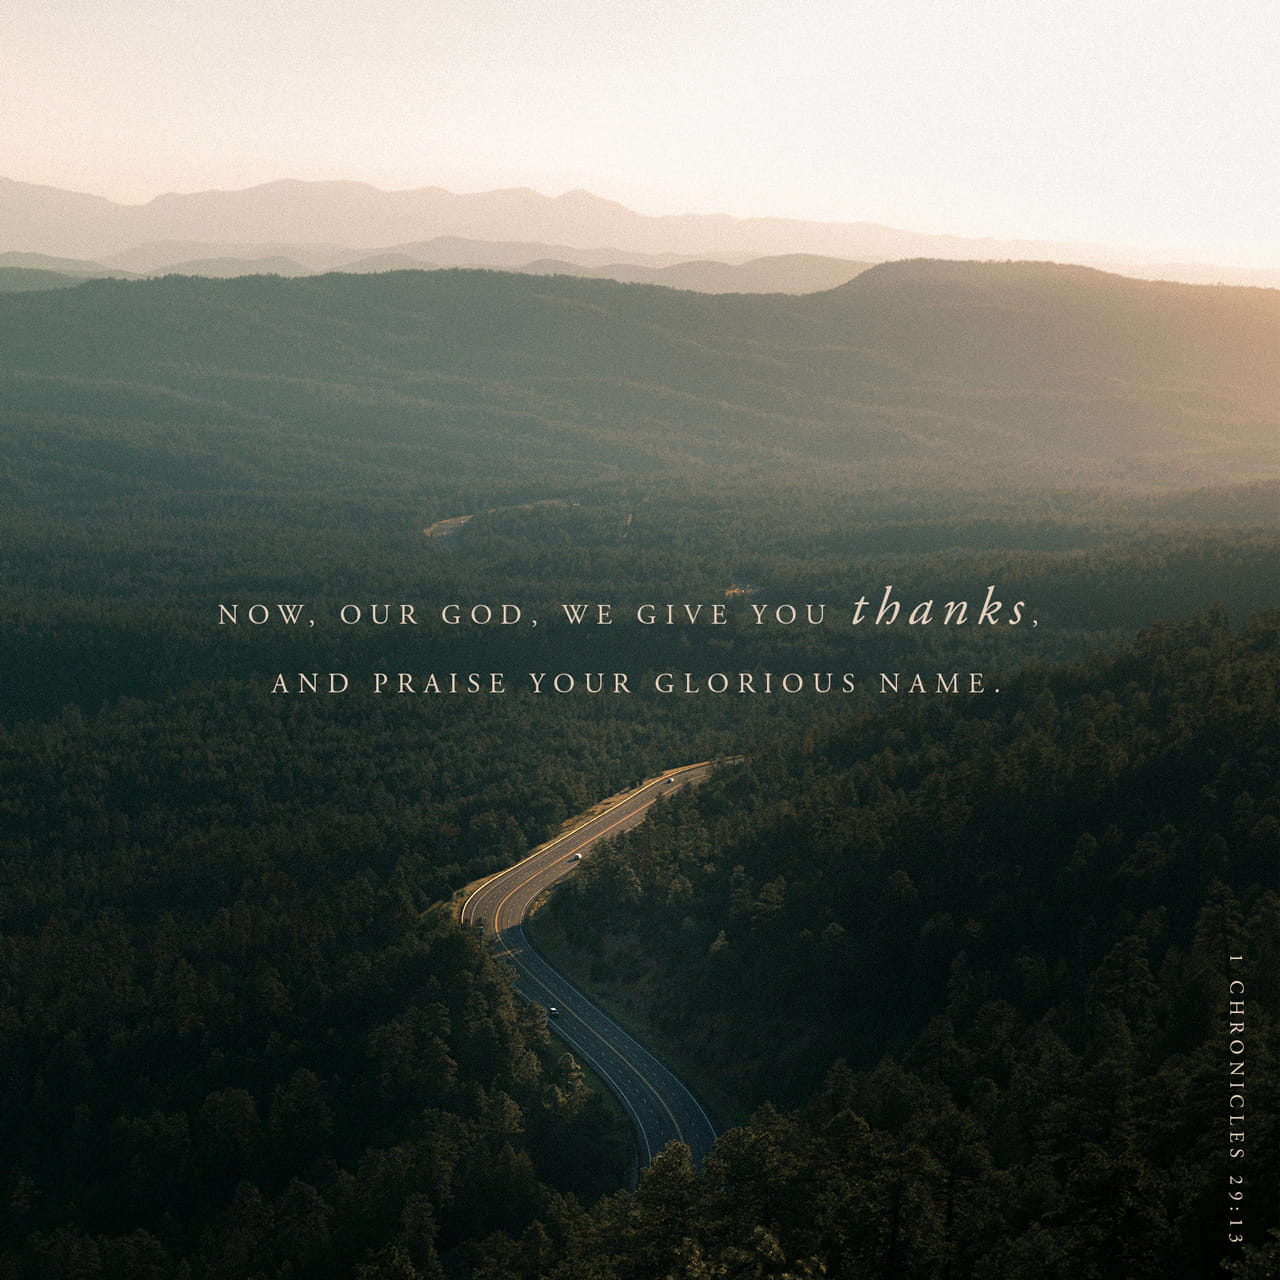 1 Chronicles 29:13 Now, our God, we give you thanks, and praise your glorious name. | New International Version (NIV)